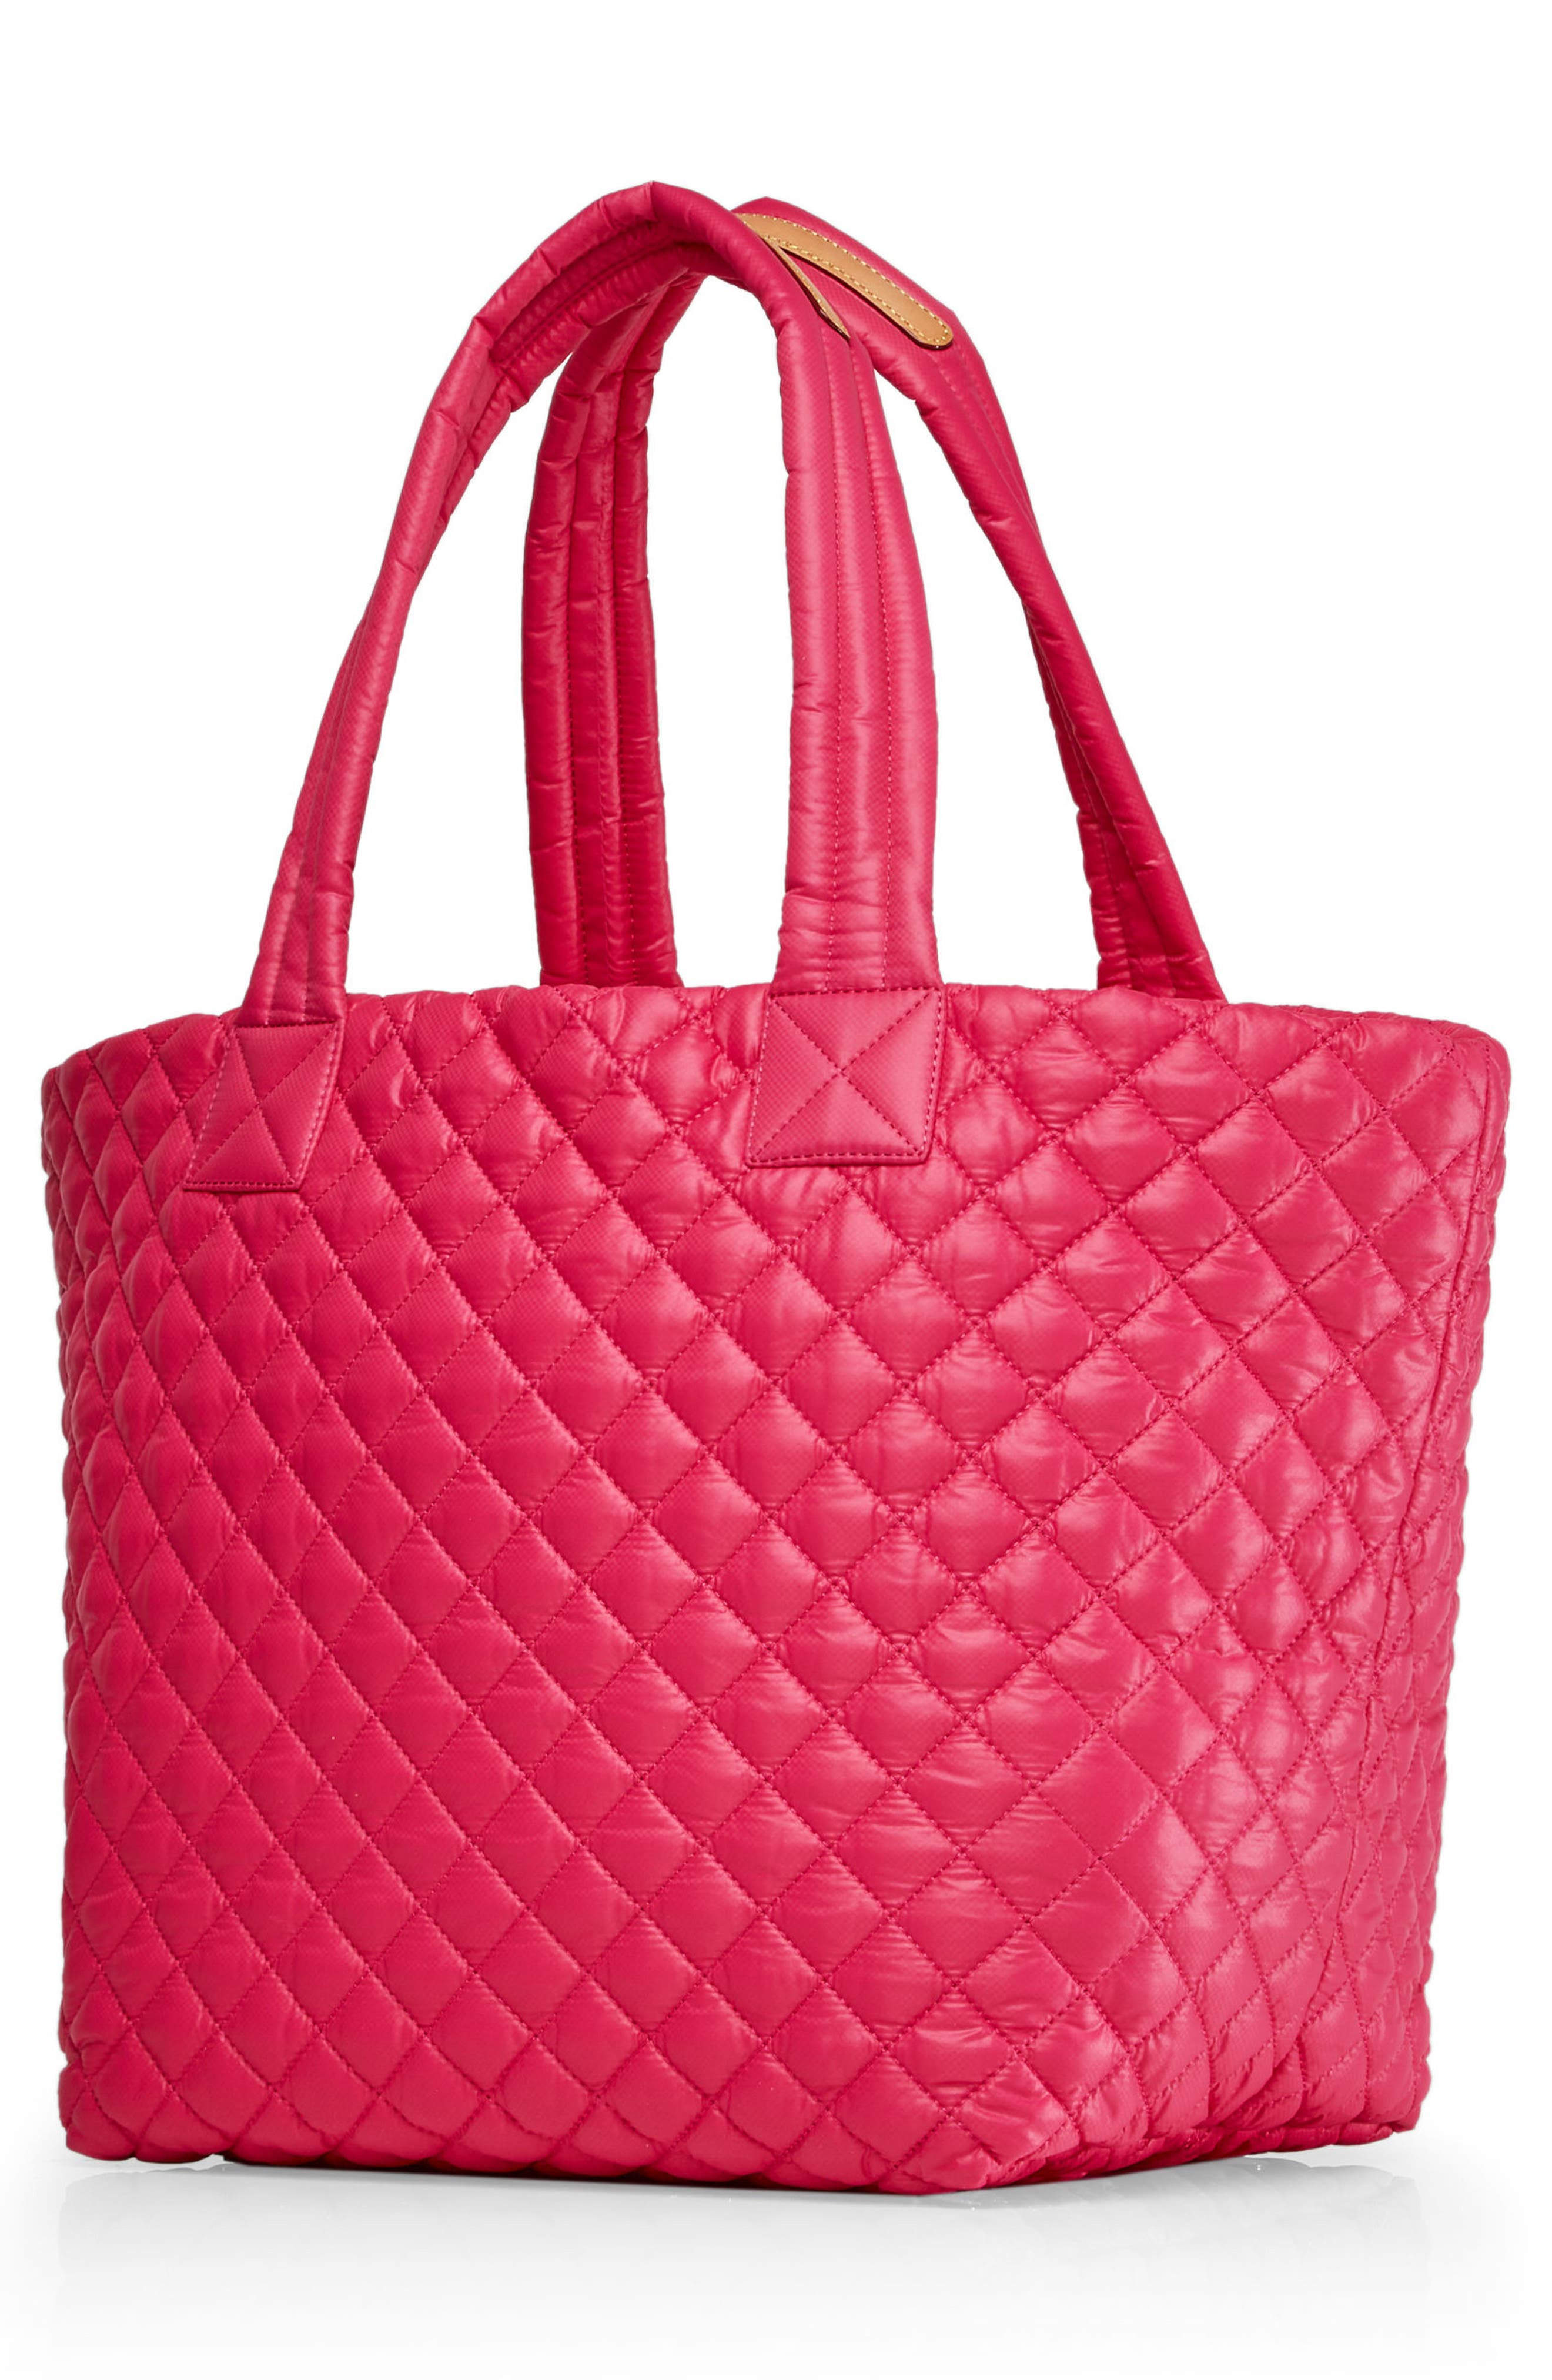 'Medium Metro' Quilted Lacquer Tote,                             Alternate thumbnail 2, color,                             Dragon Fruit